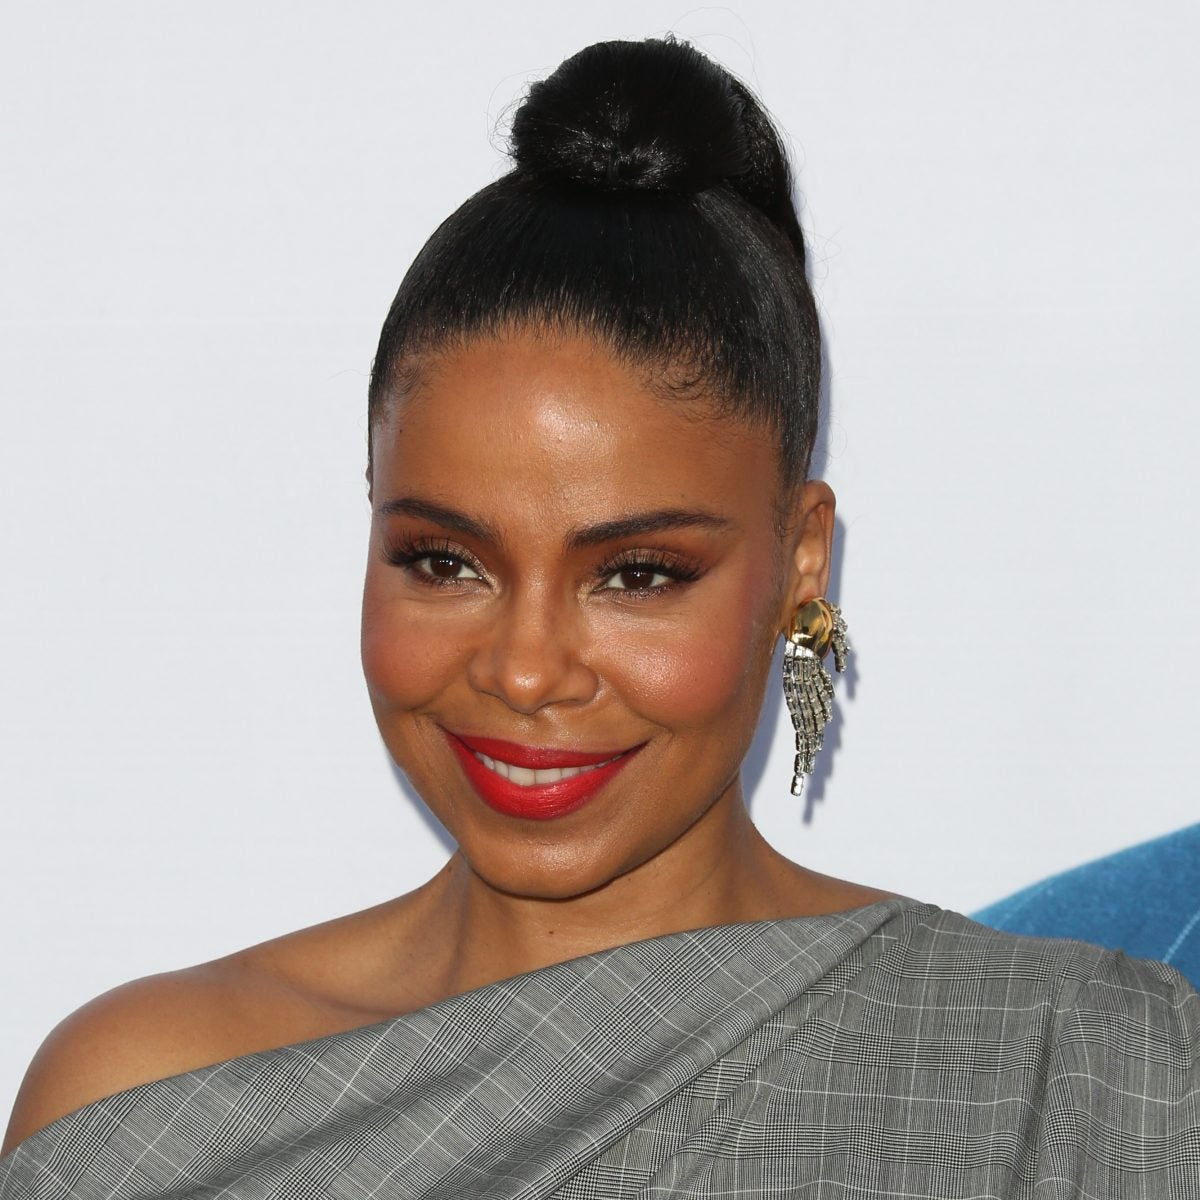 Sanaa Lathan Shows Off Major Hair Growth Three Years After Her Big Chop